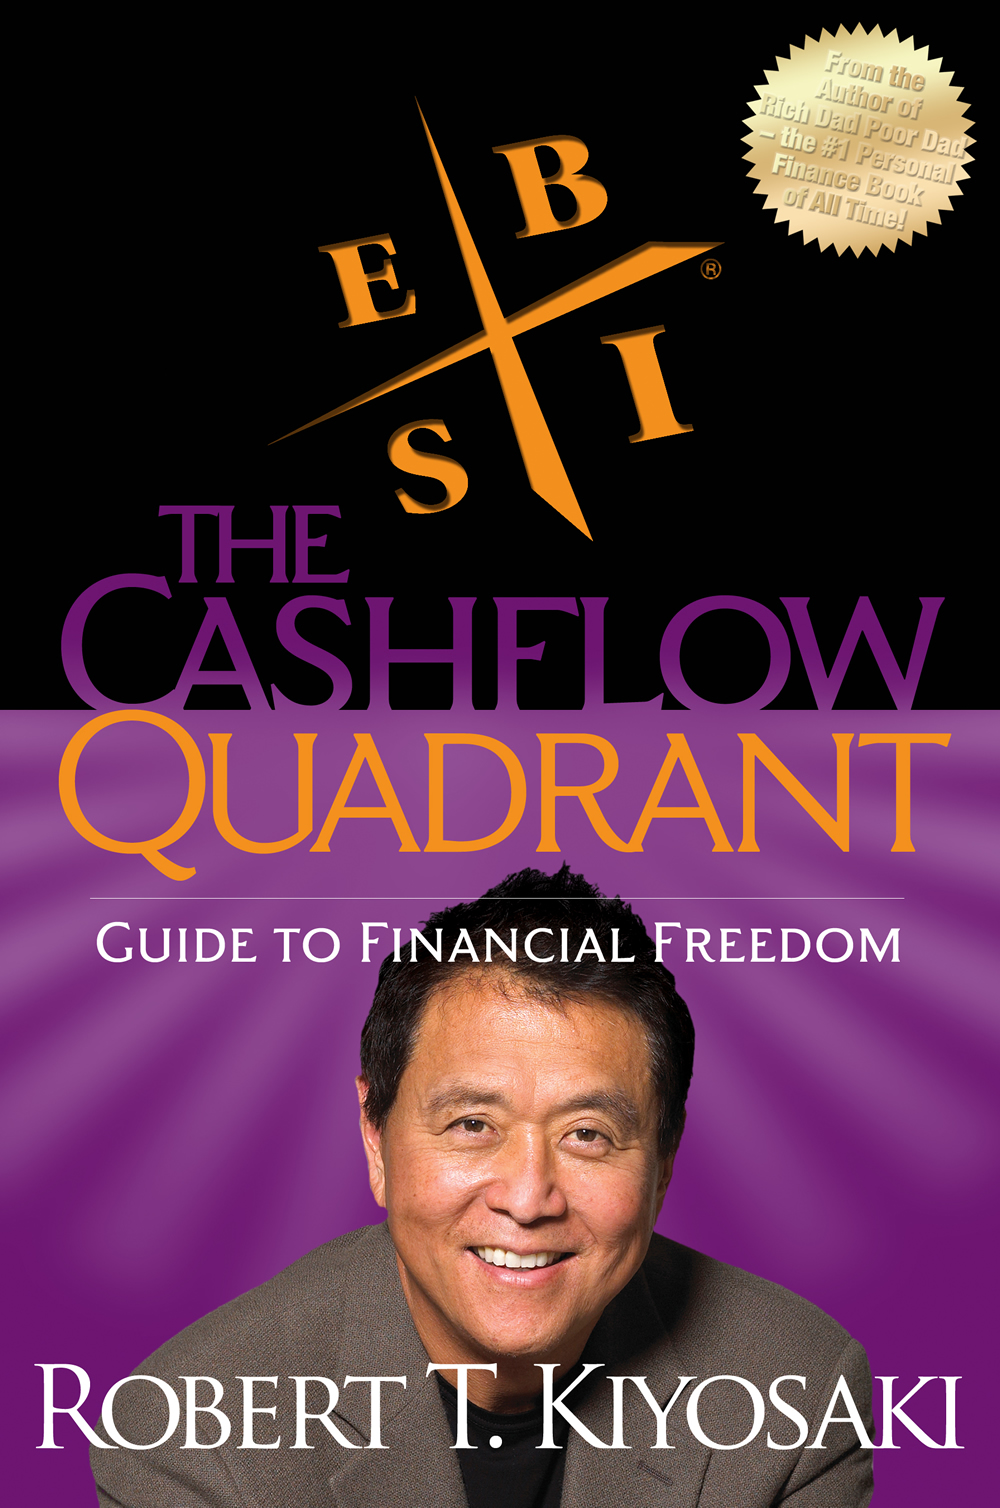 Rich Dad's Cashflow Quadrant: Rich Dad's Guide to Financial Freedom -  Robert T. Kiyosaki - reviews for audiobook - reviews, quotes, summary